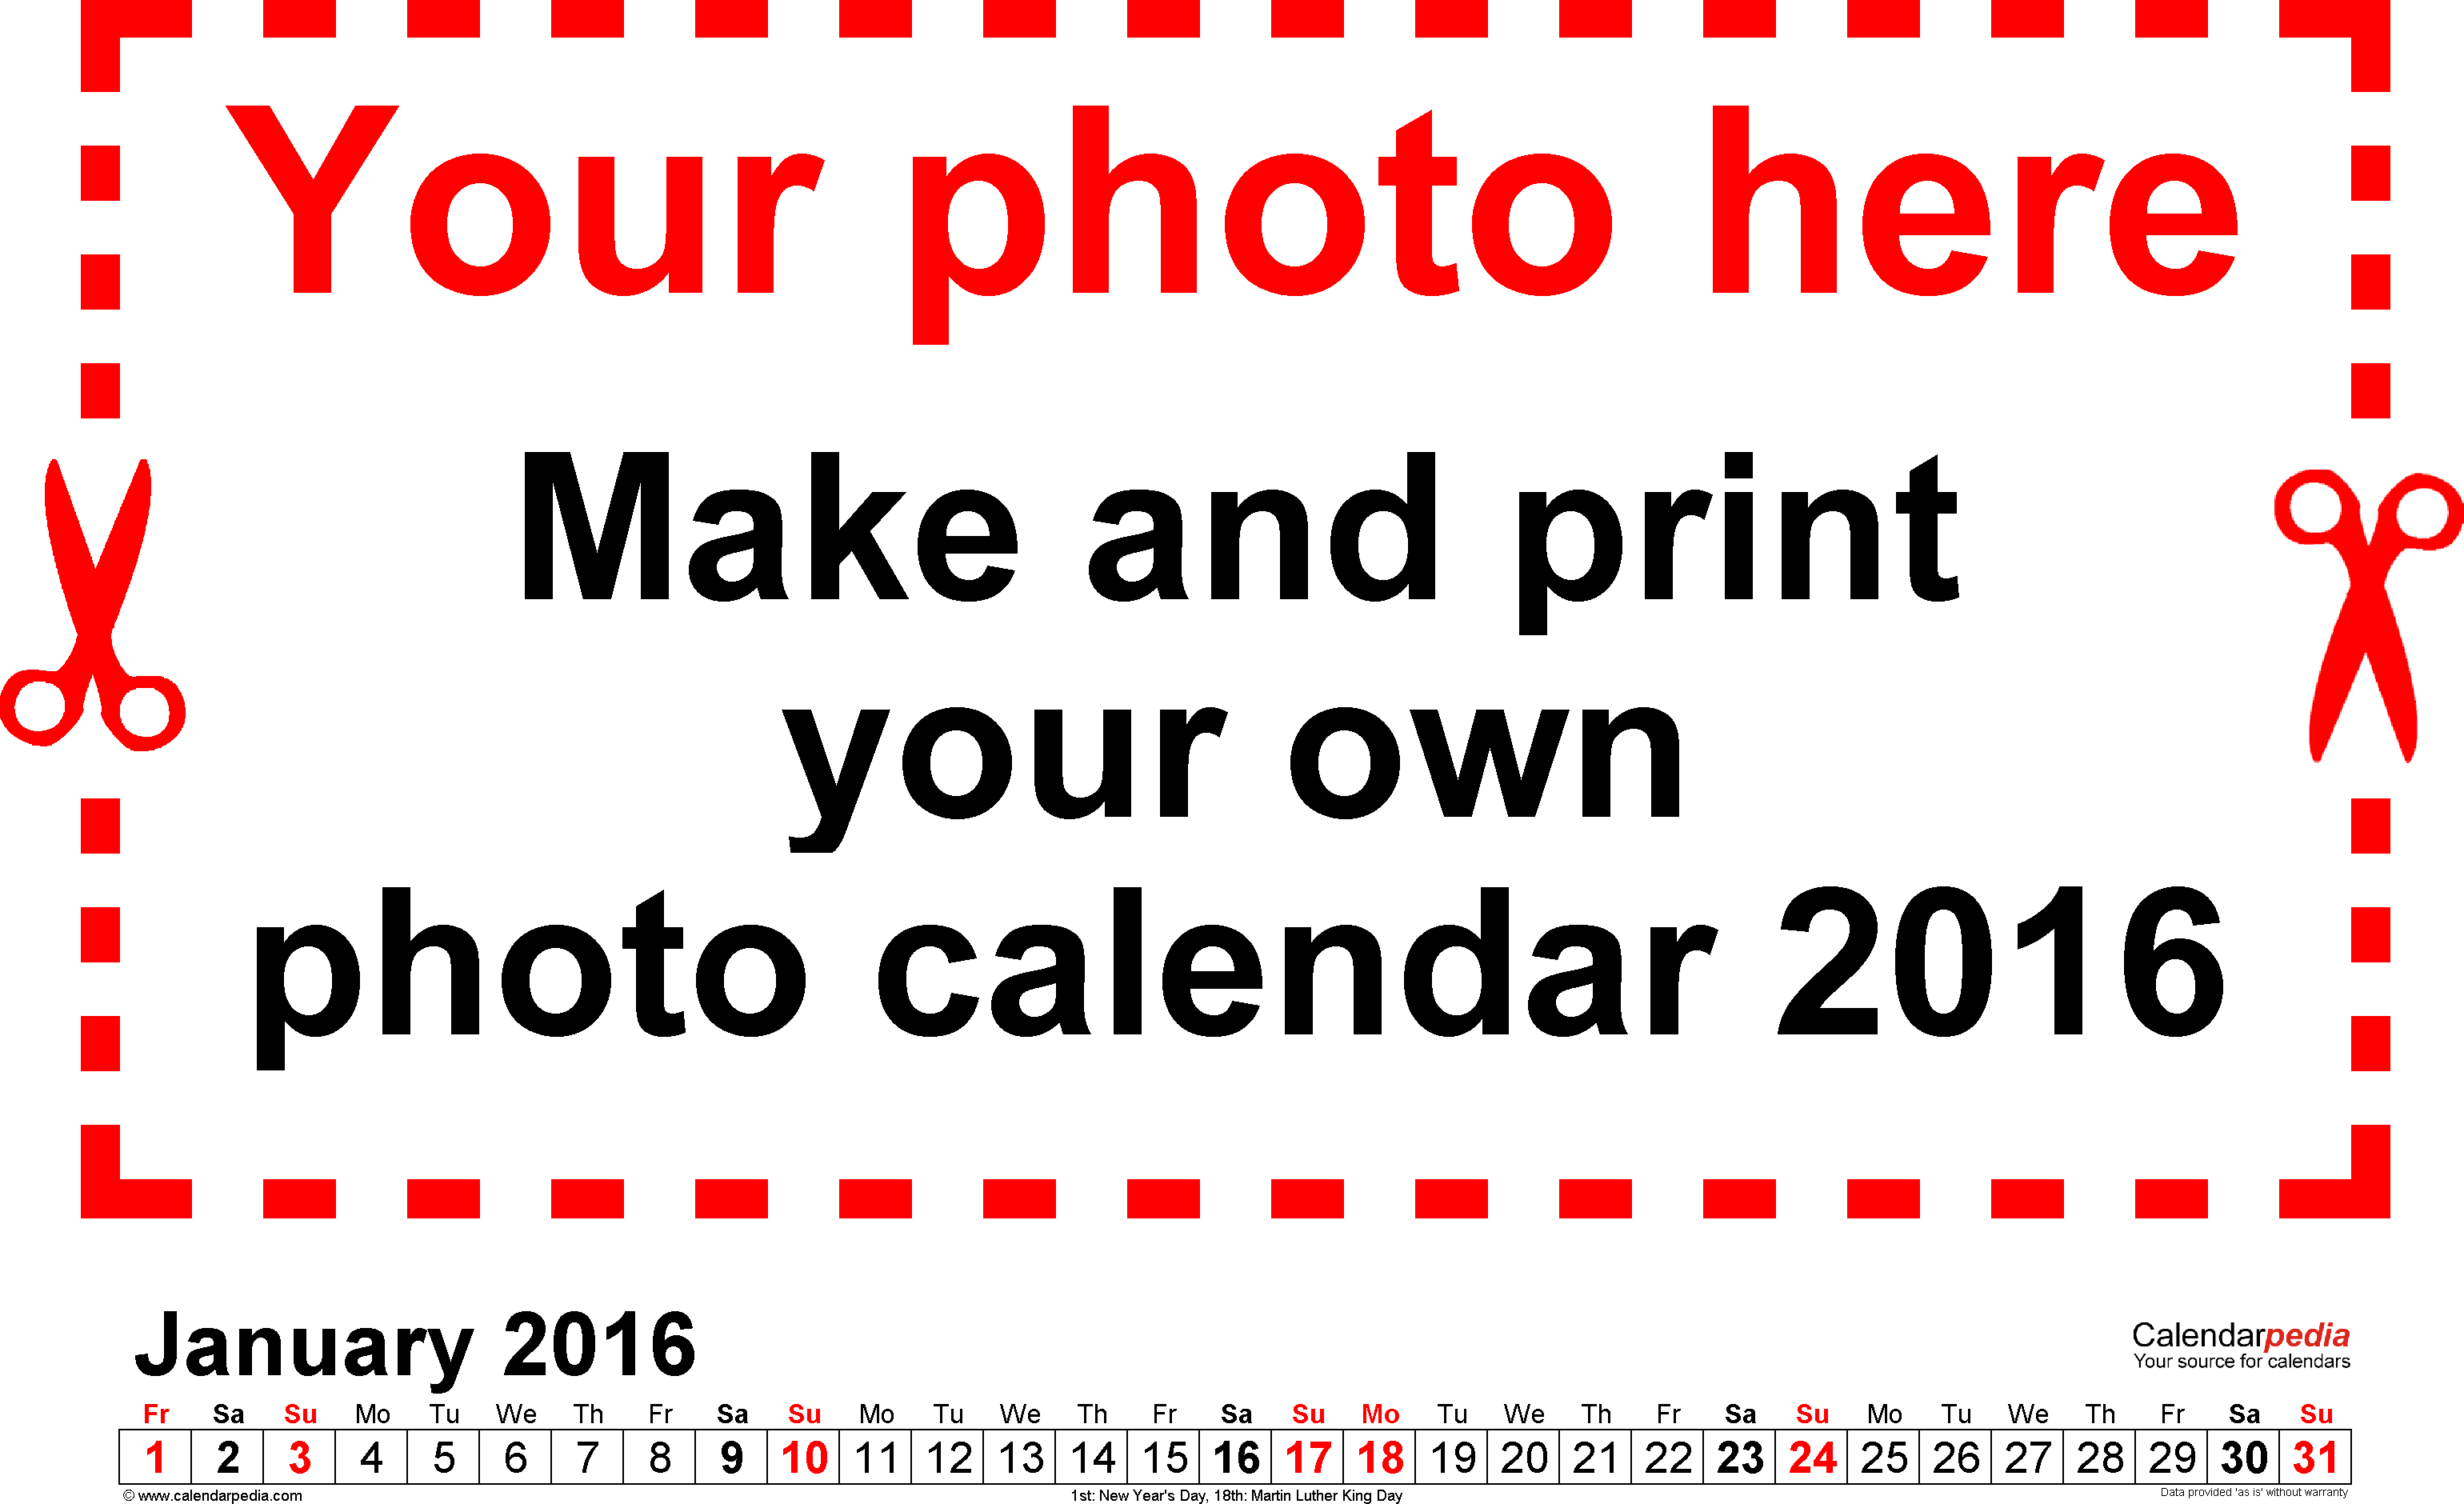 Download Template 5: Photo calendar 2016 for PDF, 12 pages, landscape format